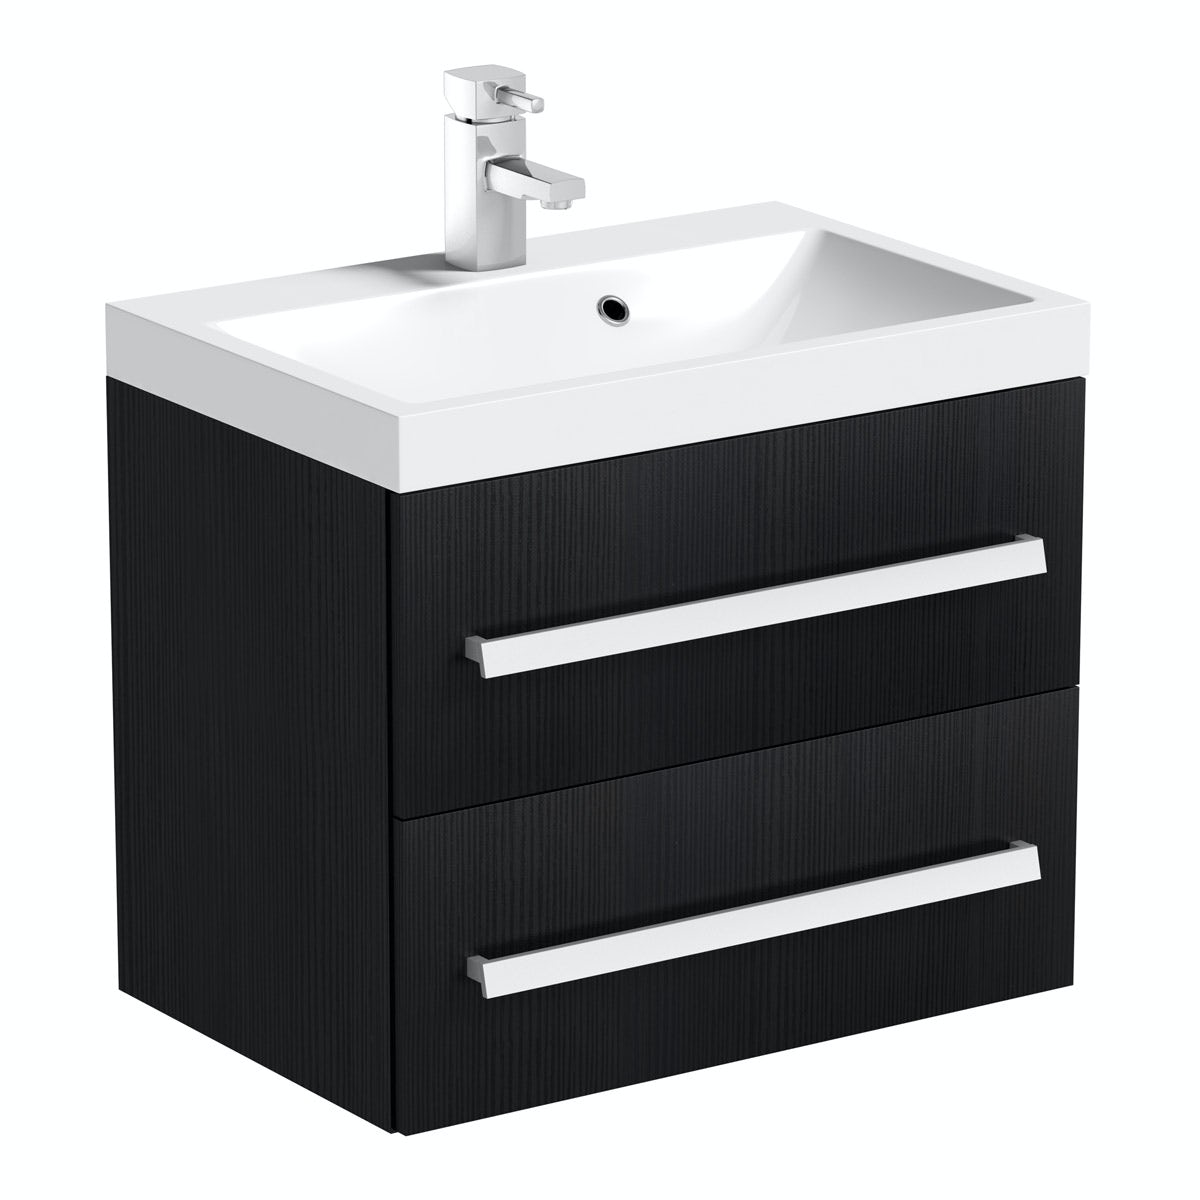 Orchard Wye essen wall hung vanity unit with basin 600mm